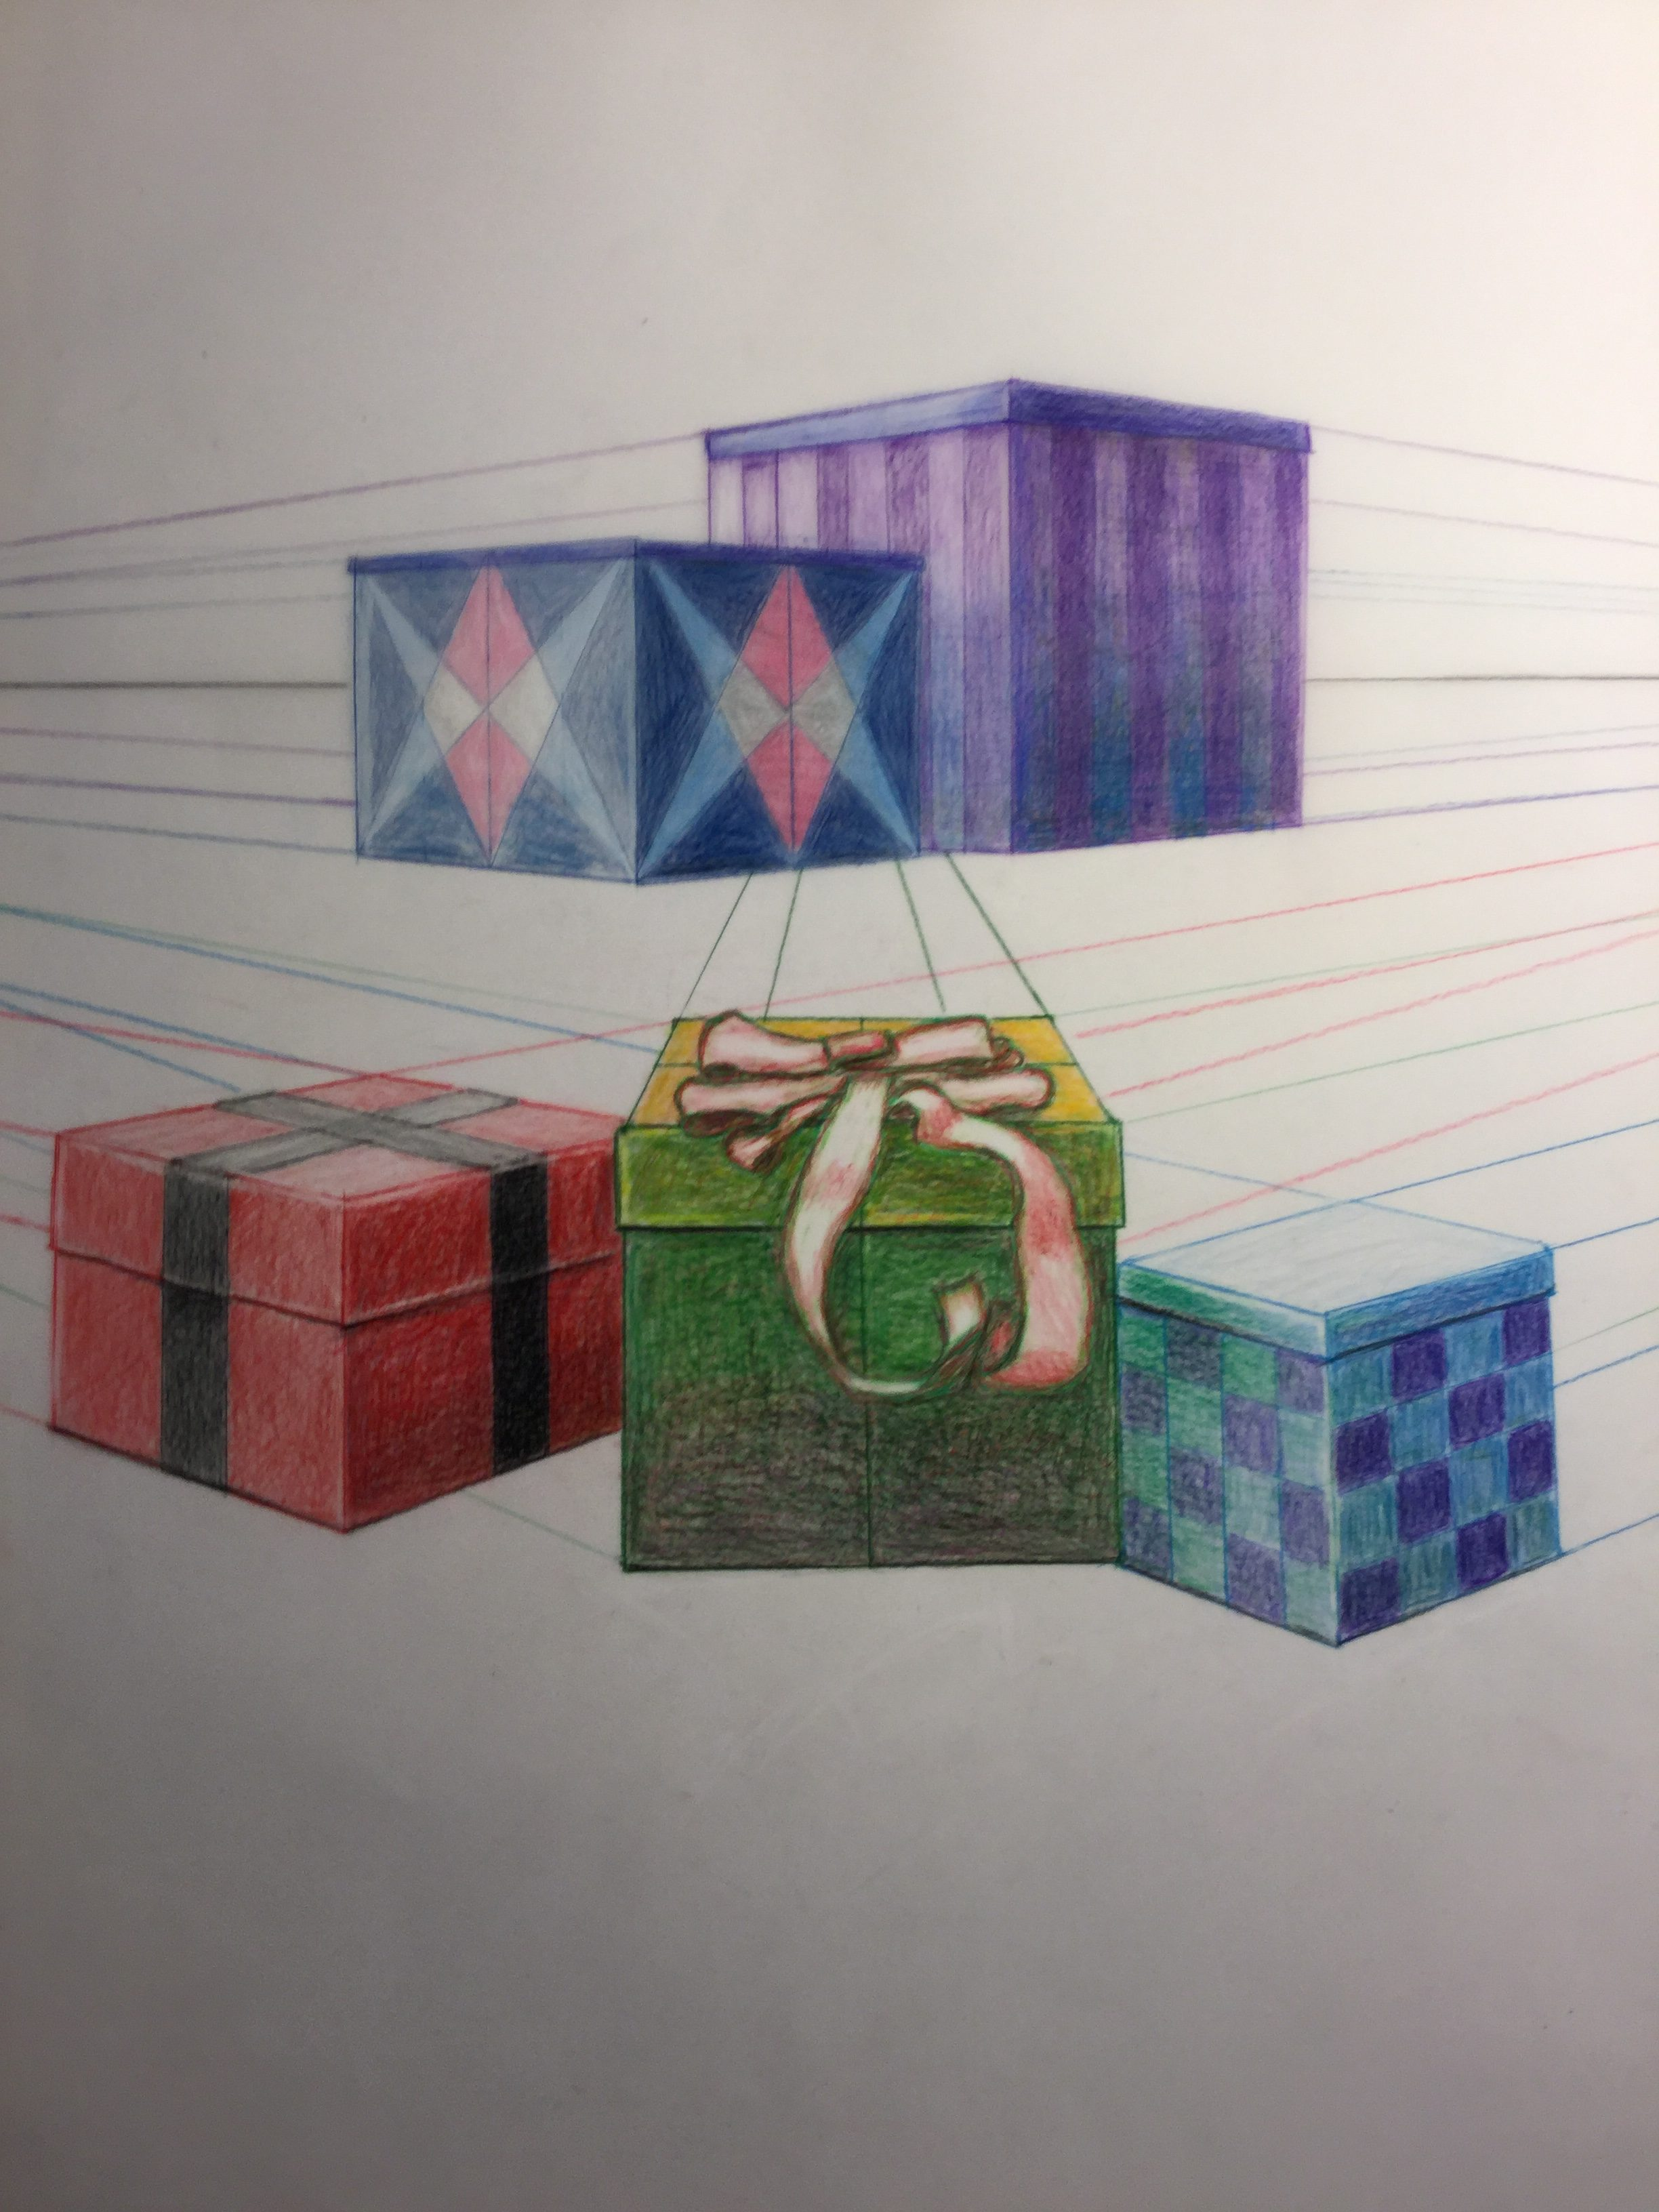 Prismacolor drawing of gift boxes